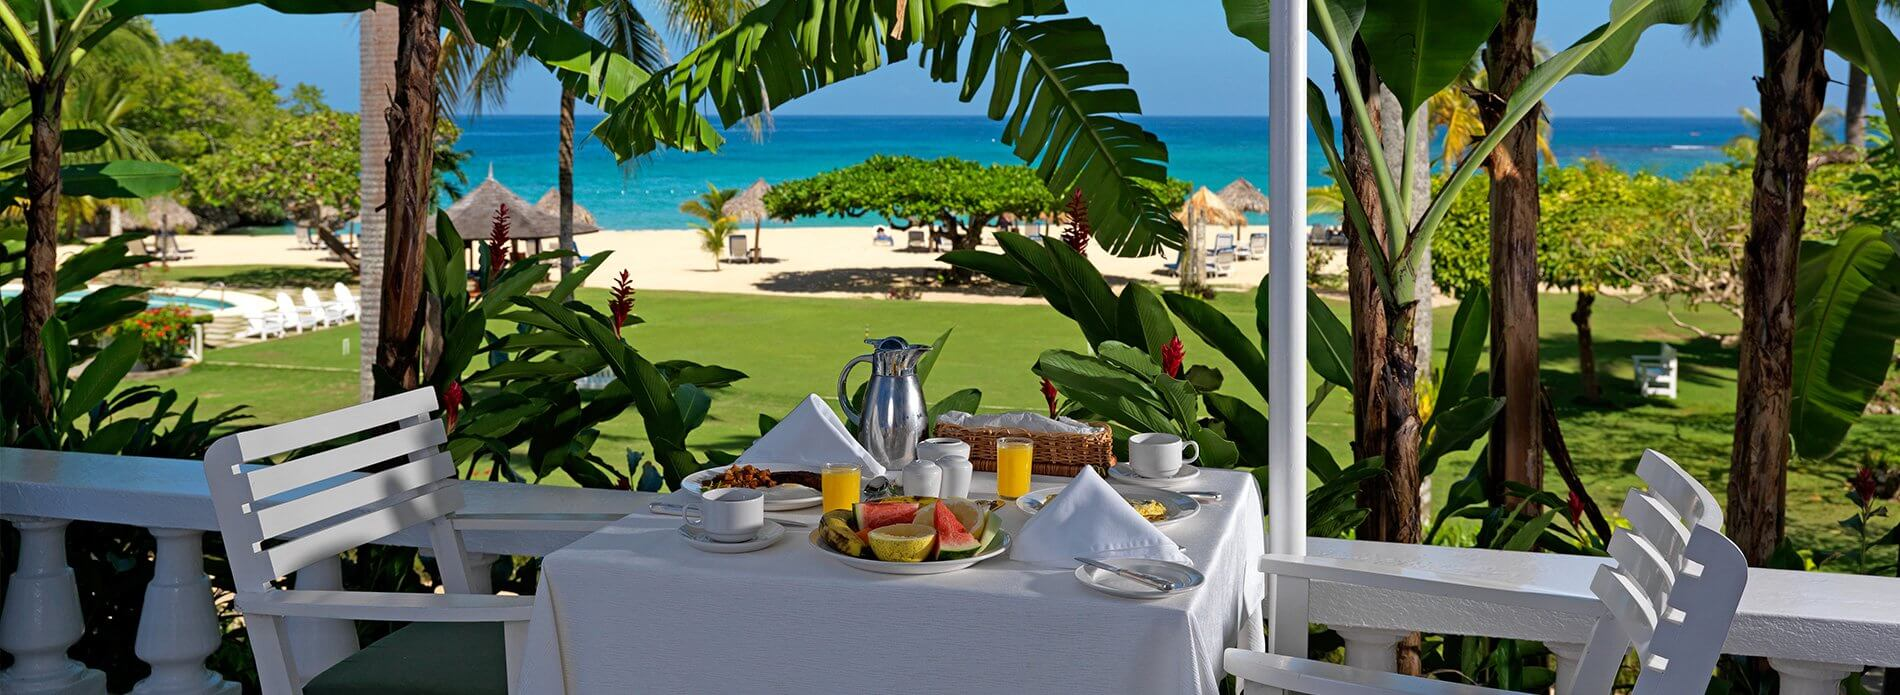 Terrace breakfast at Jamaica Inn, a unique hotel on the beach in Jamaica.